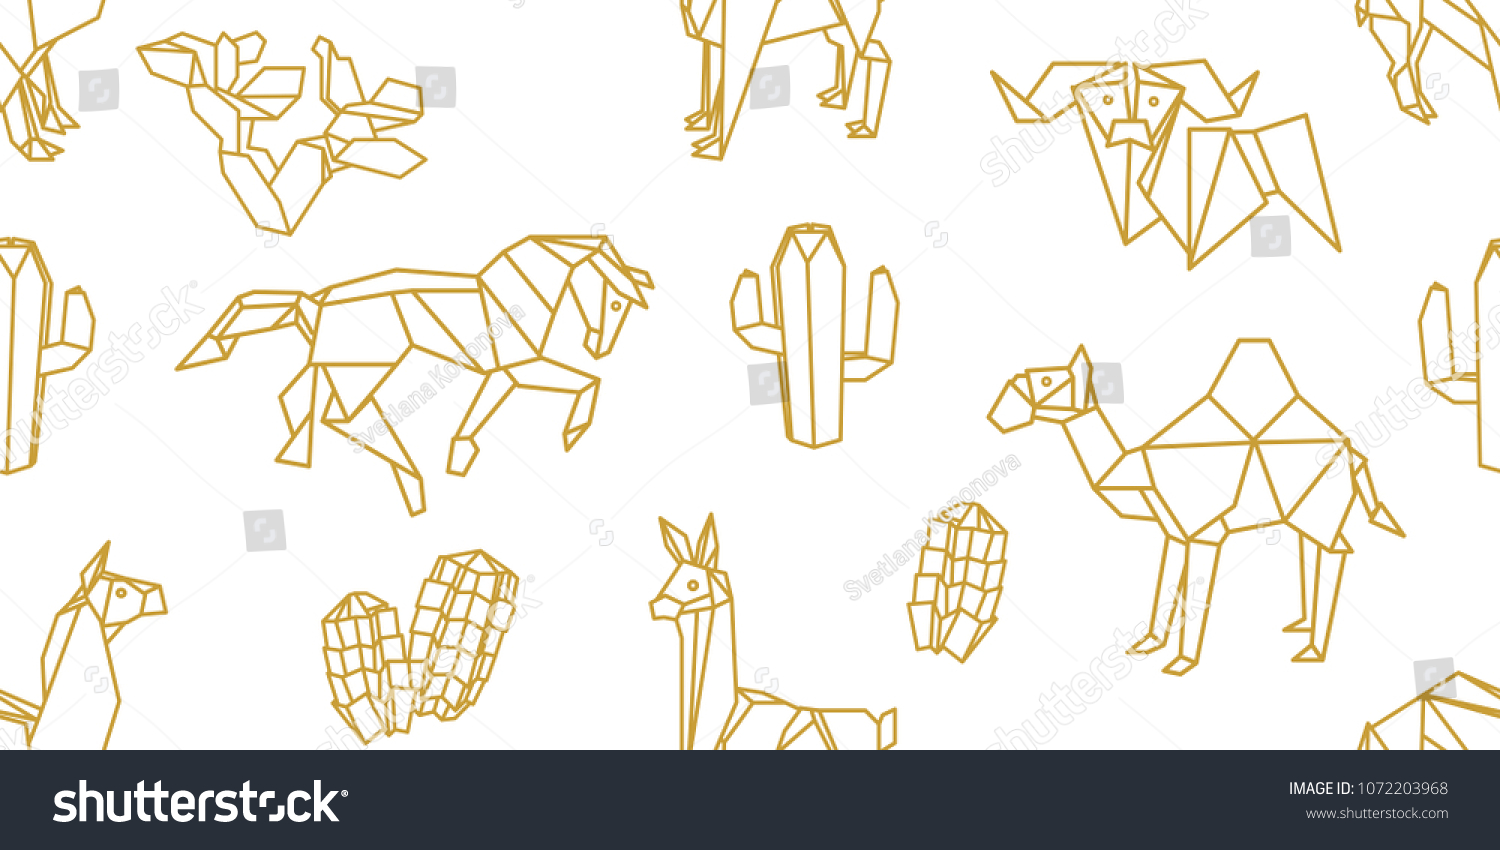 Origami Animals Seamless Vector Pattern Llamas Stock Royalty Dinosaurs Diagrams Embroidery With Camels Horses And Cucculents Minimalism